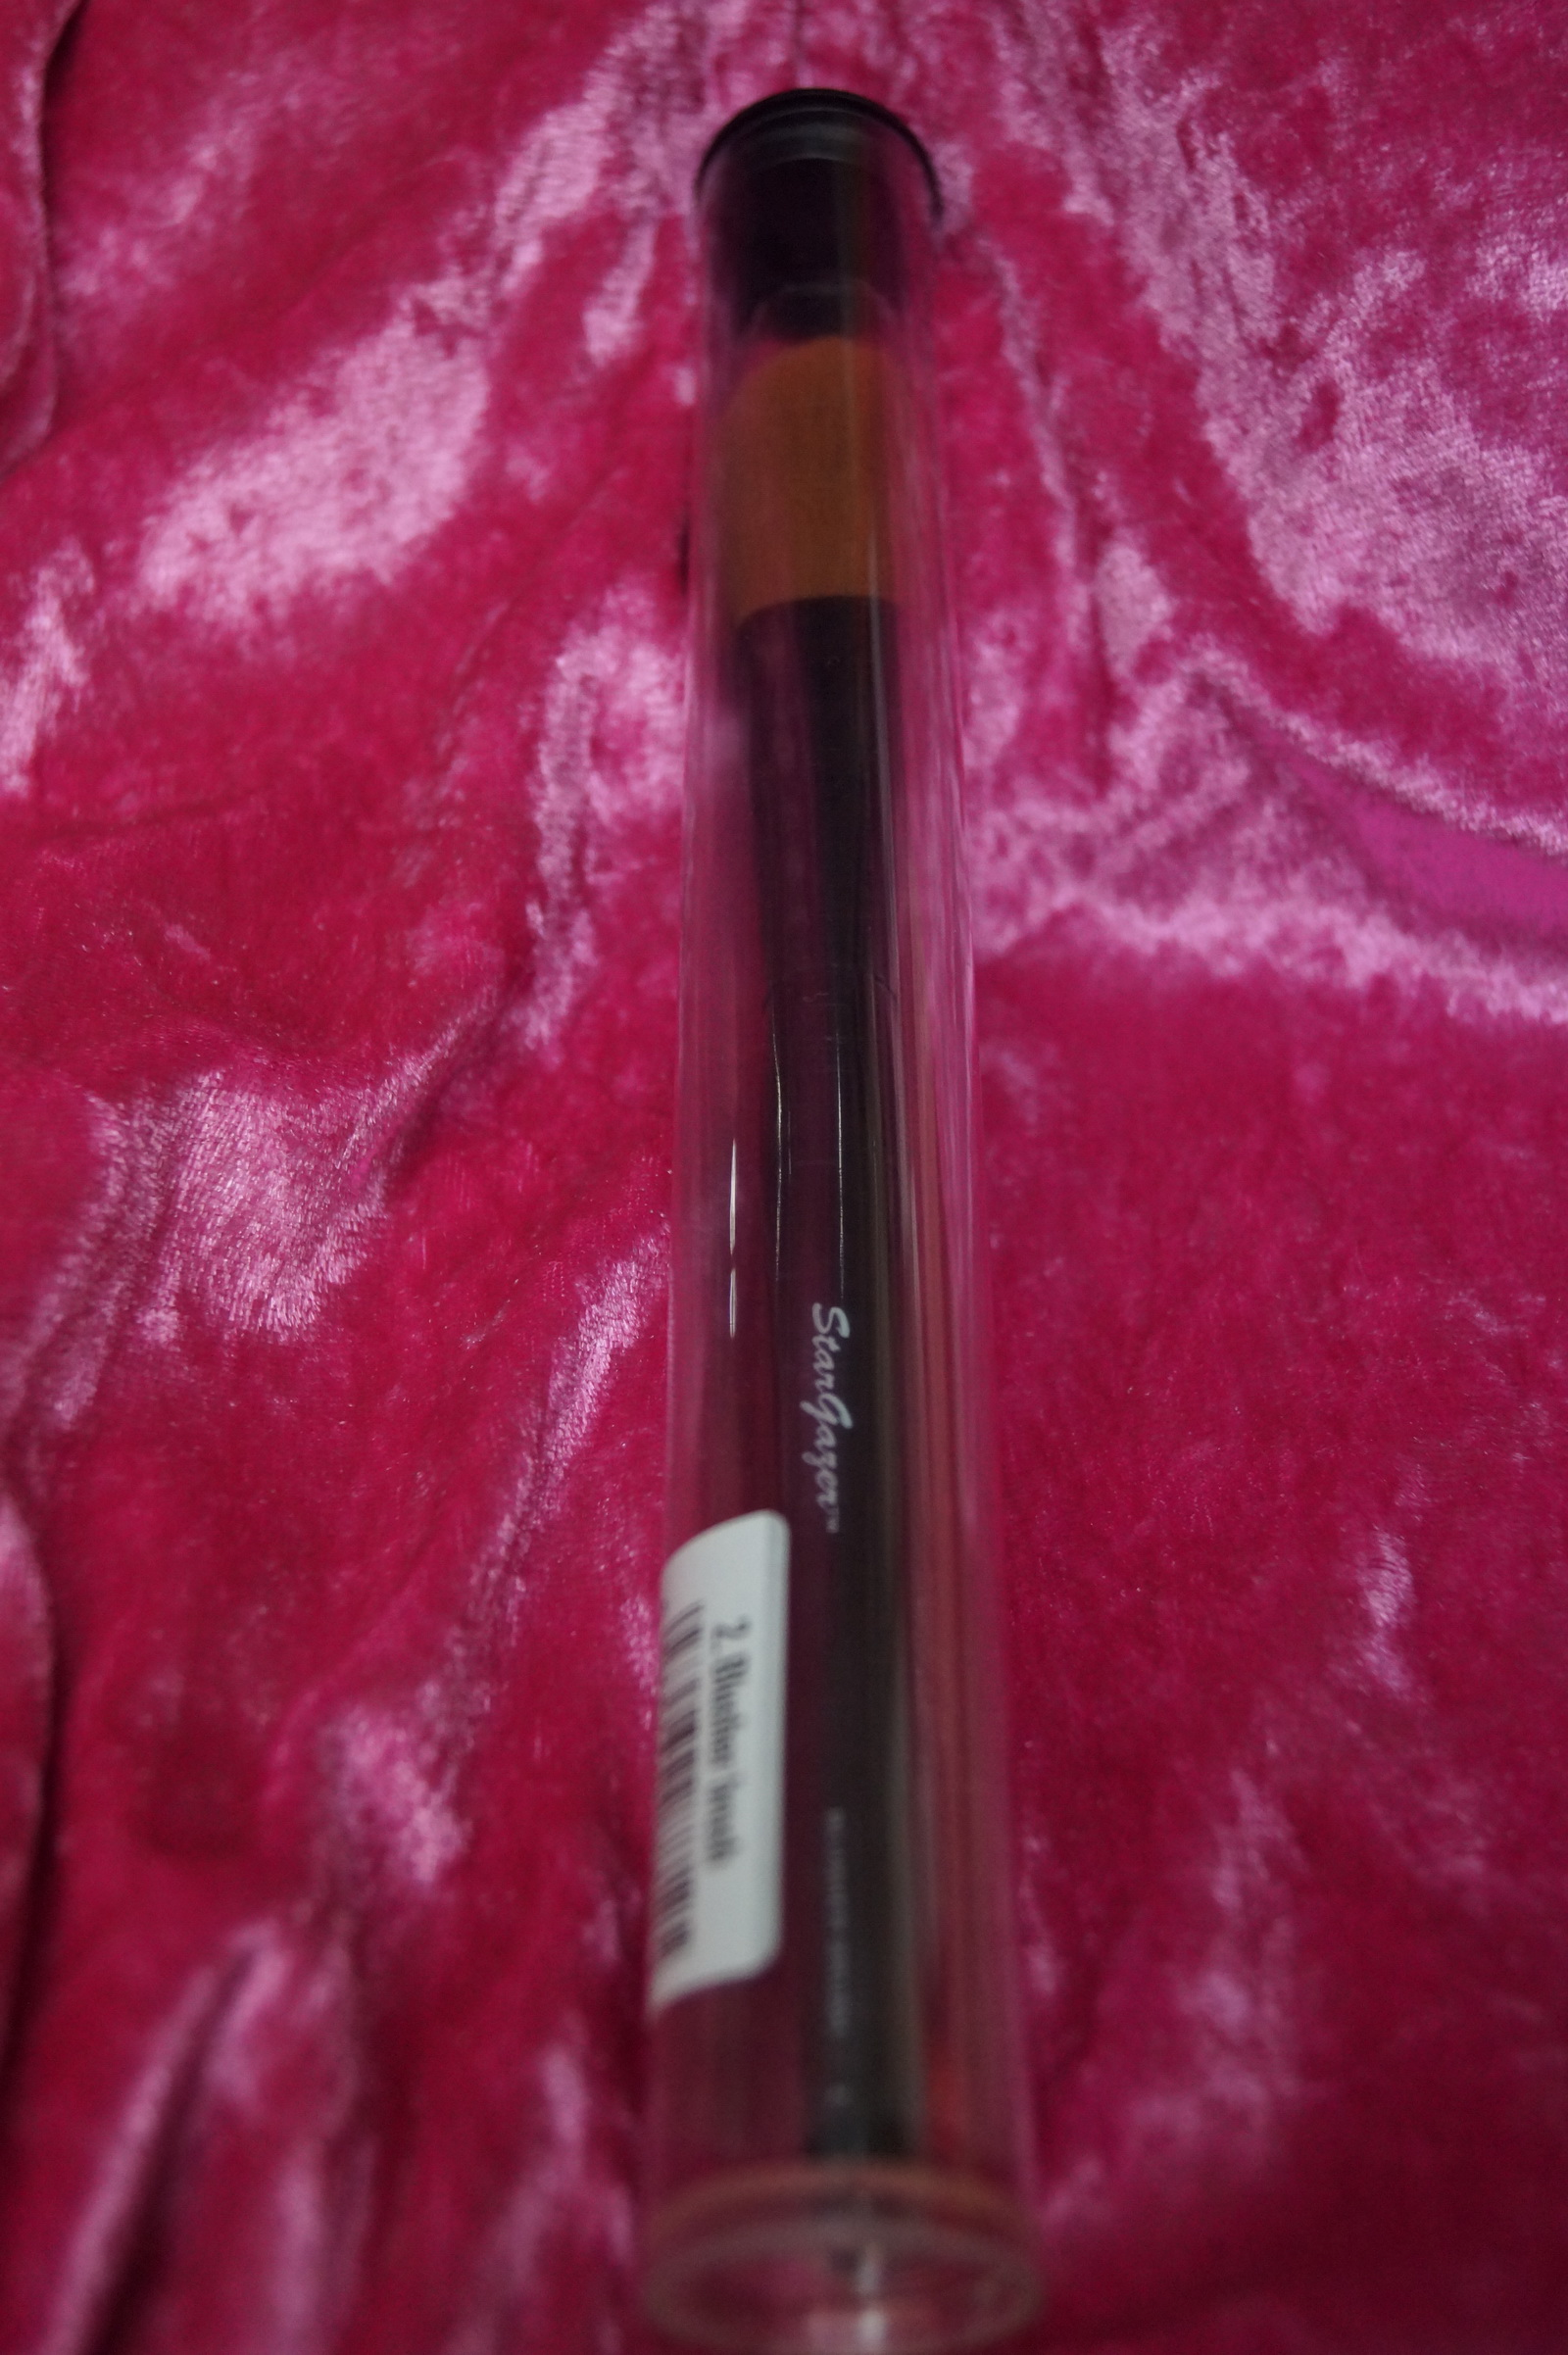 Pinsel Blusher brush Stargazer Make-up Kosmetik